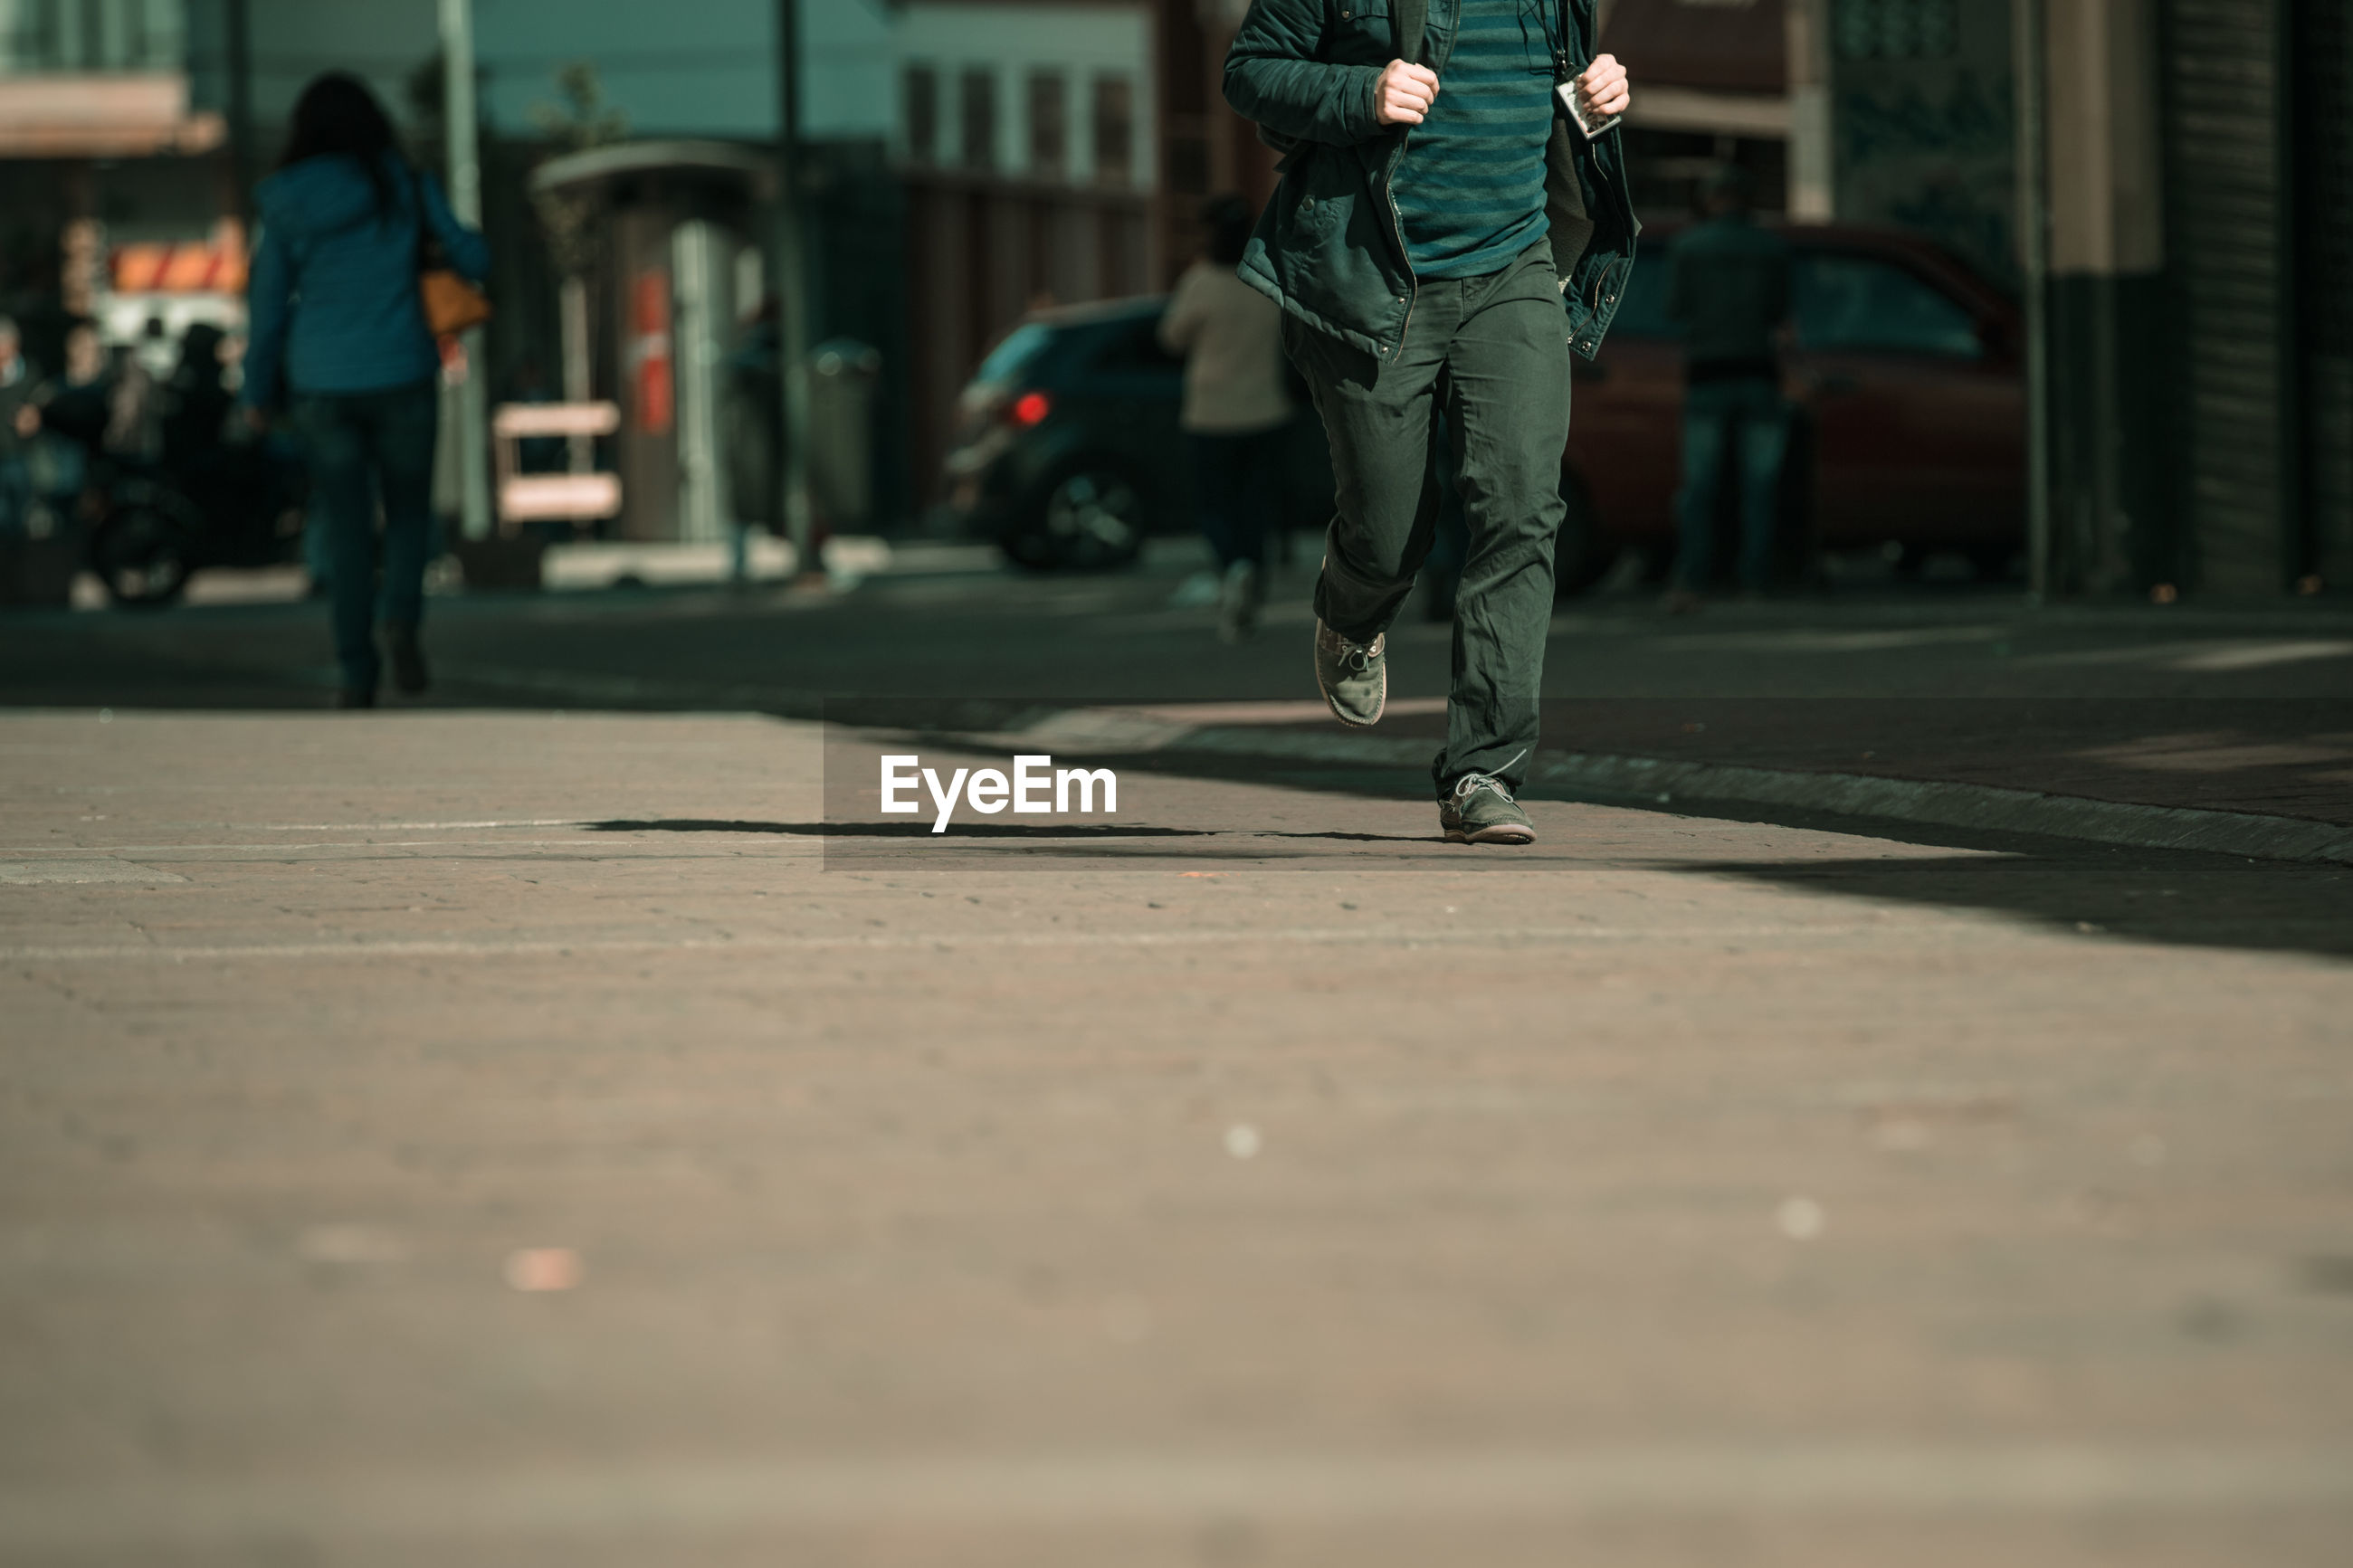 Low section of man walking on street in city